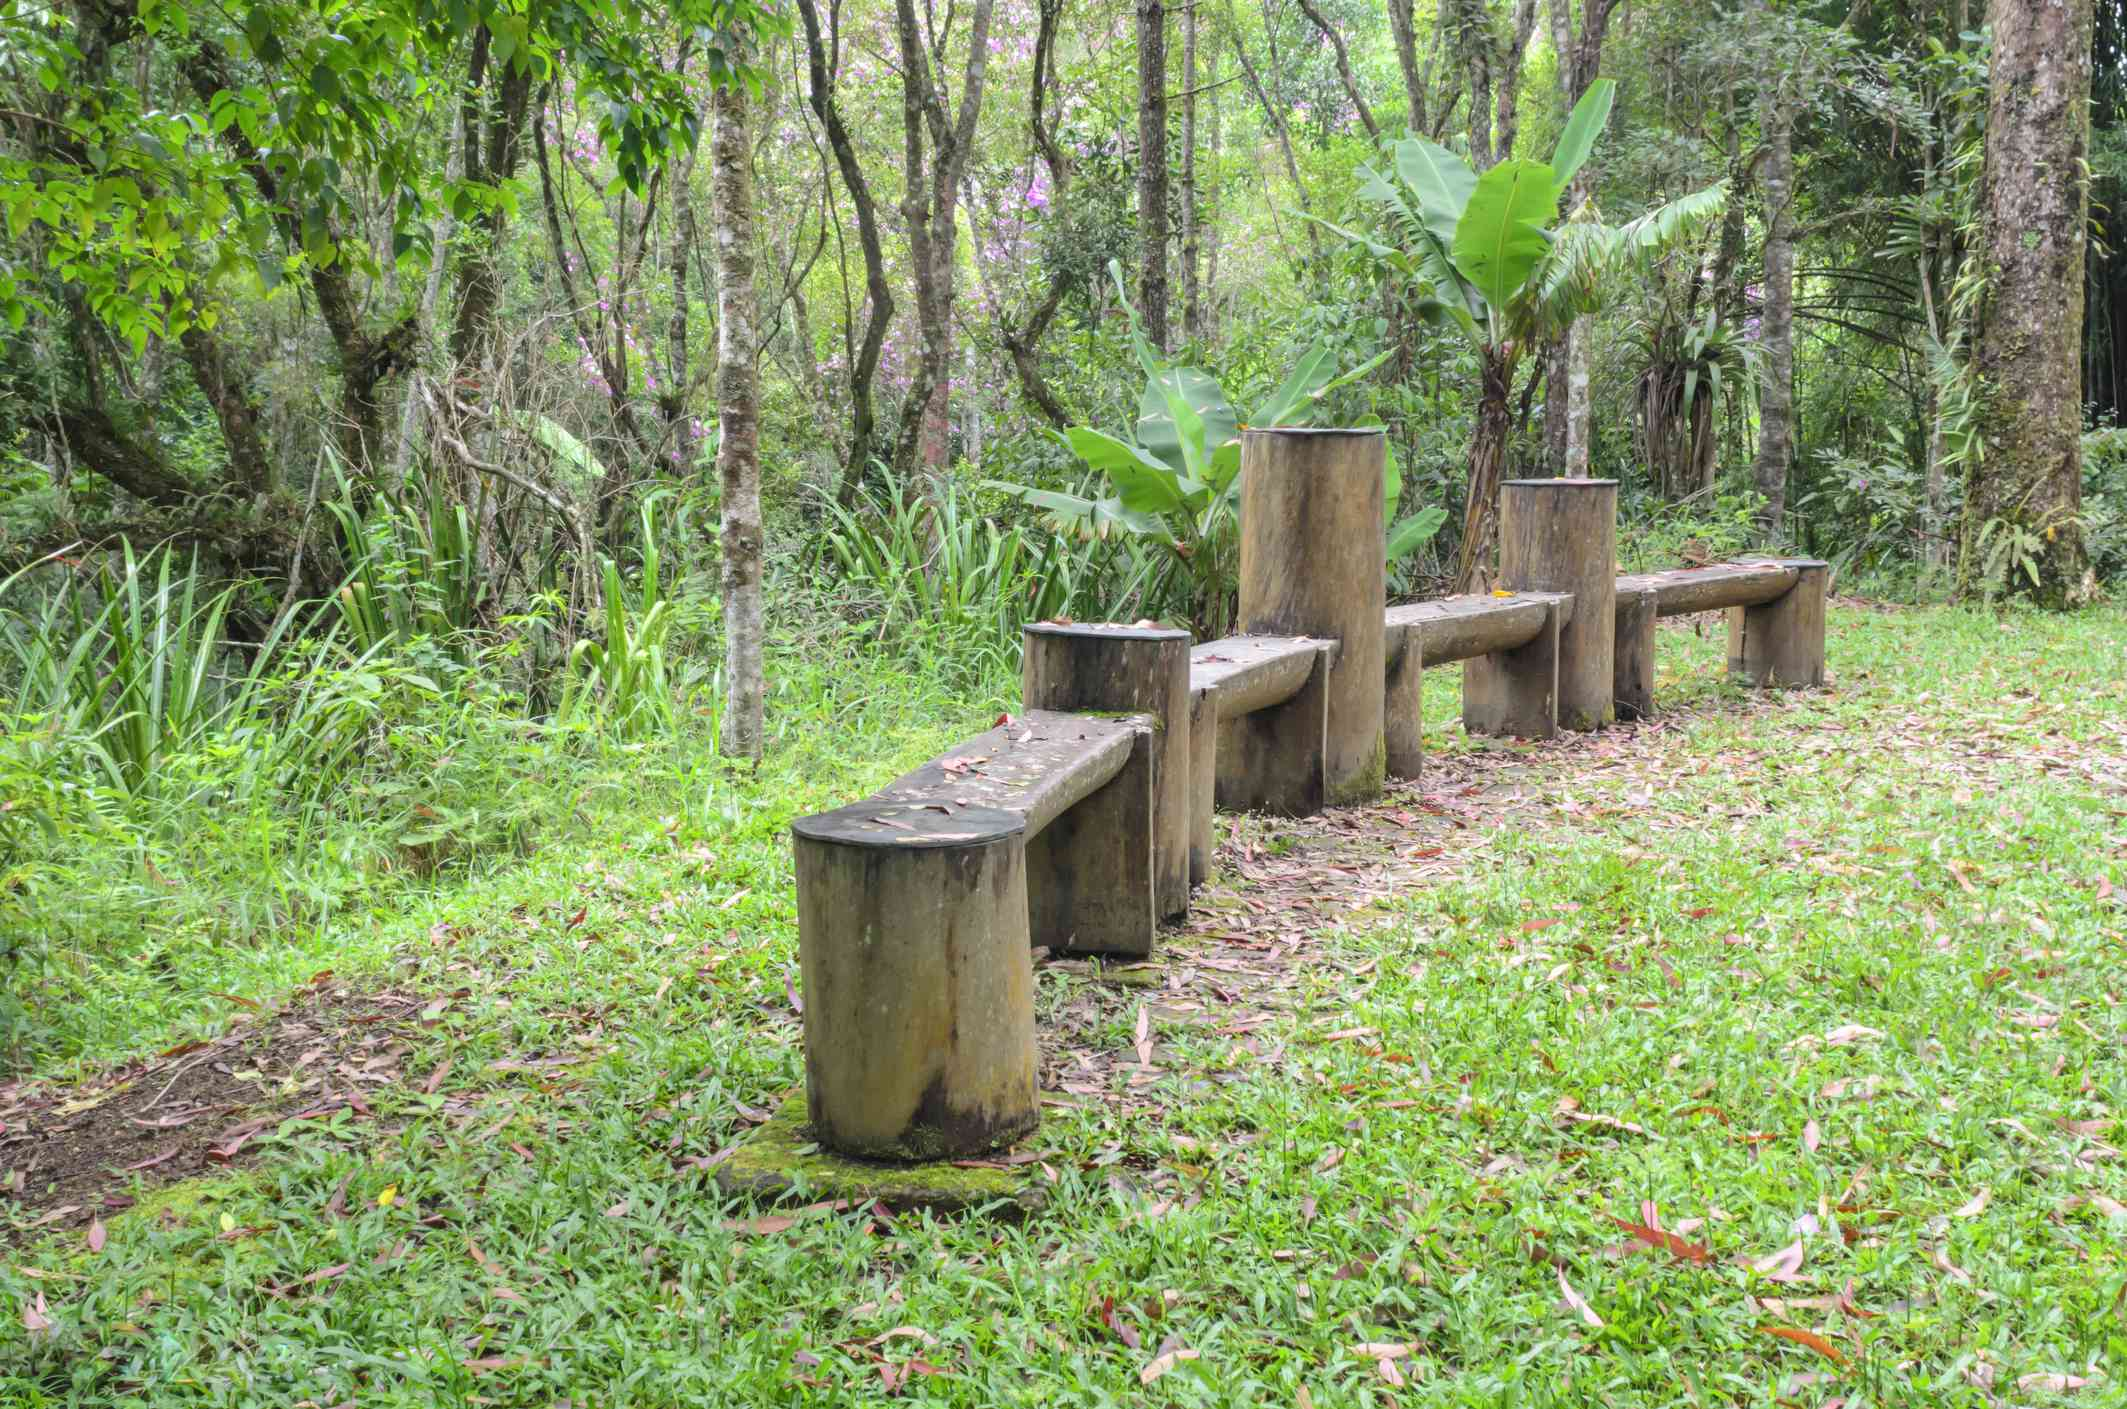 Handmade wooden bench made from a dead tree in a green forest